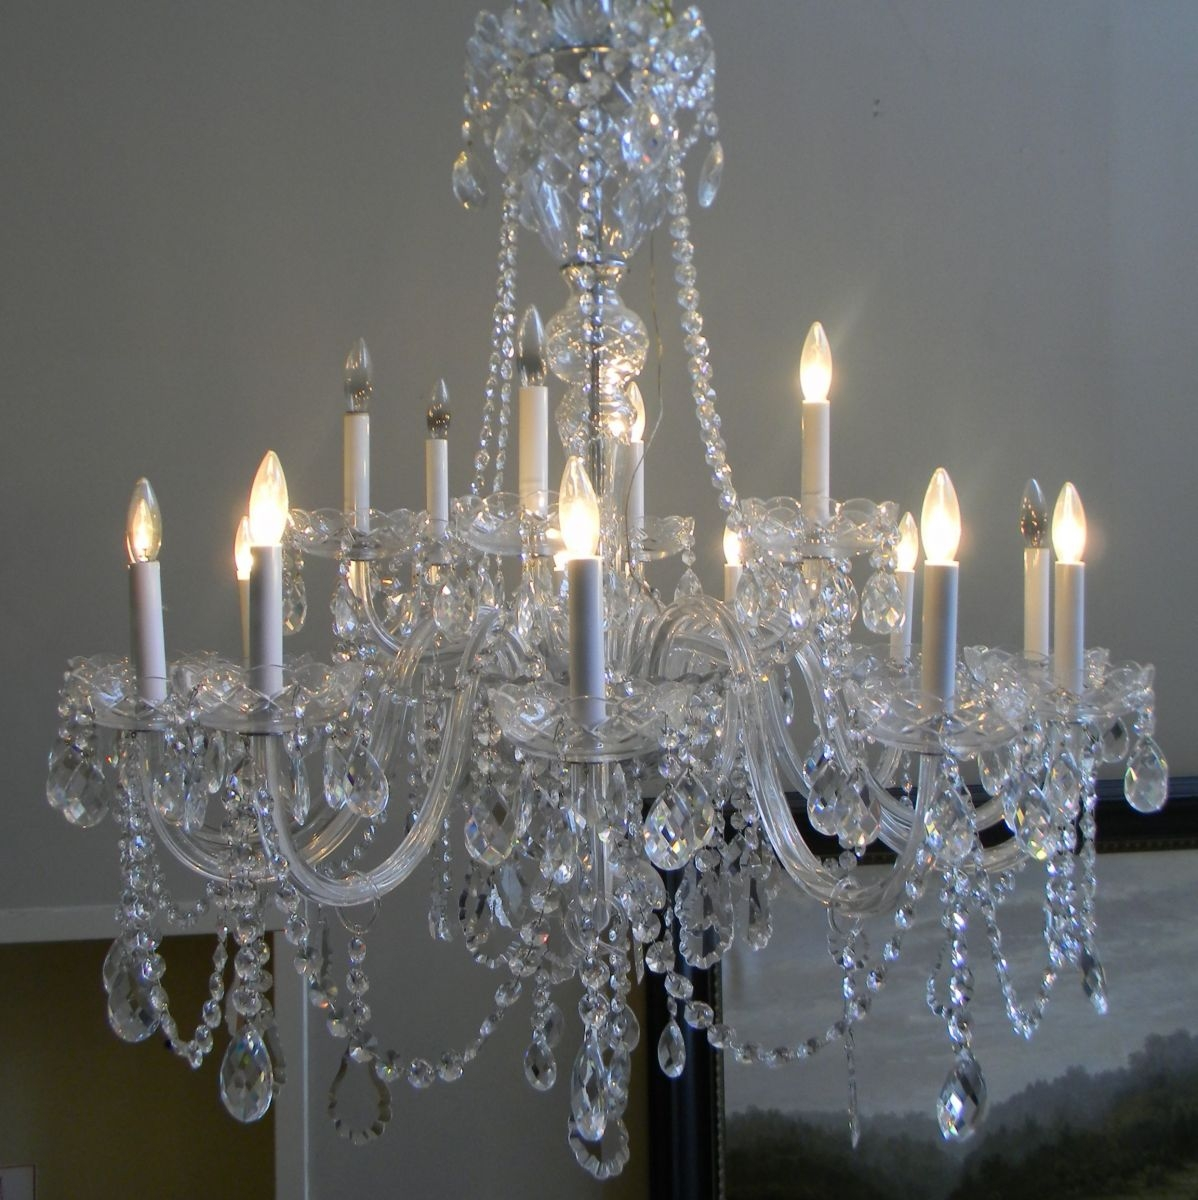 Gas Lamp Antiques Throughout Lead Crystal Chandelier (Image 14 of 15)